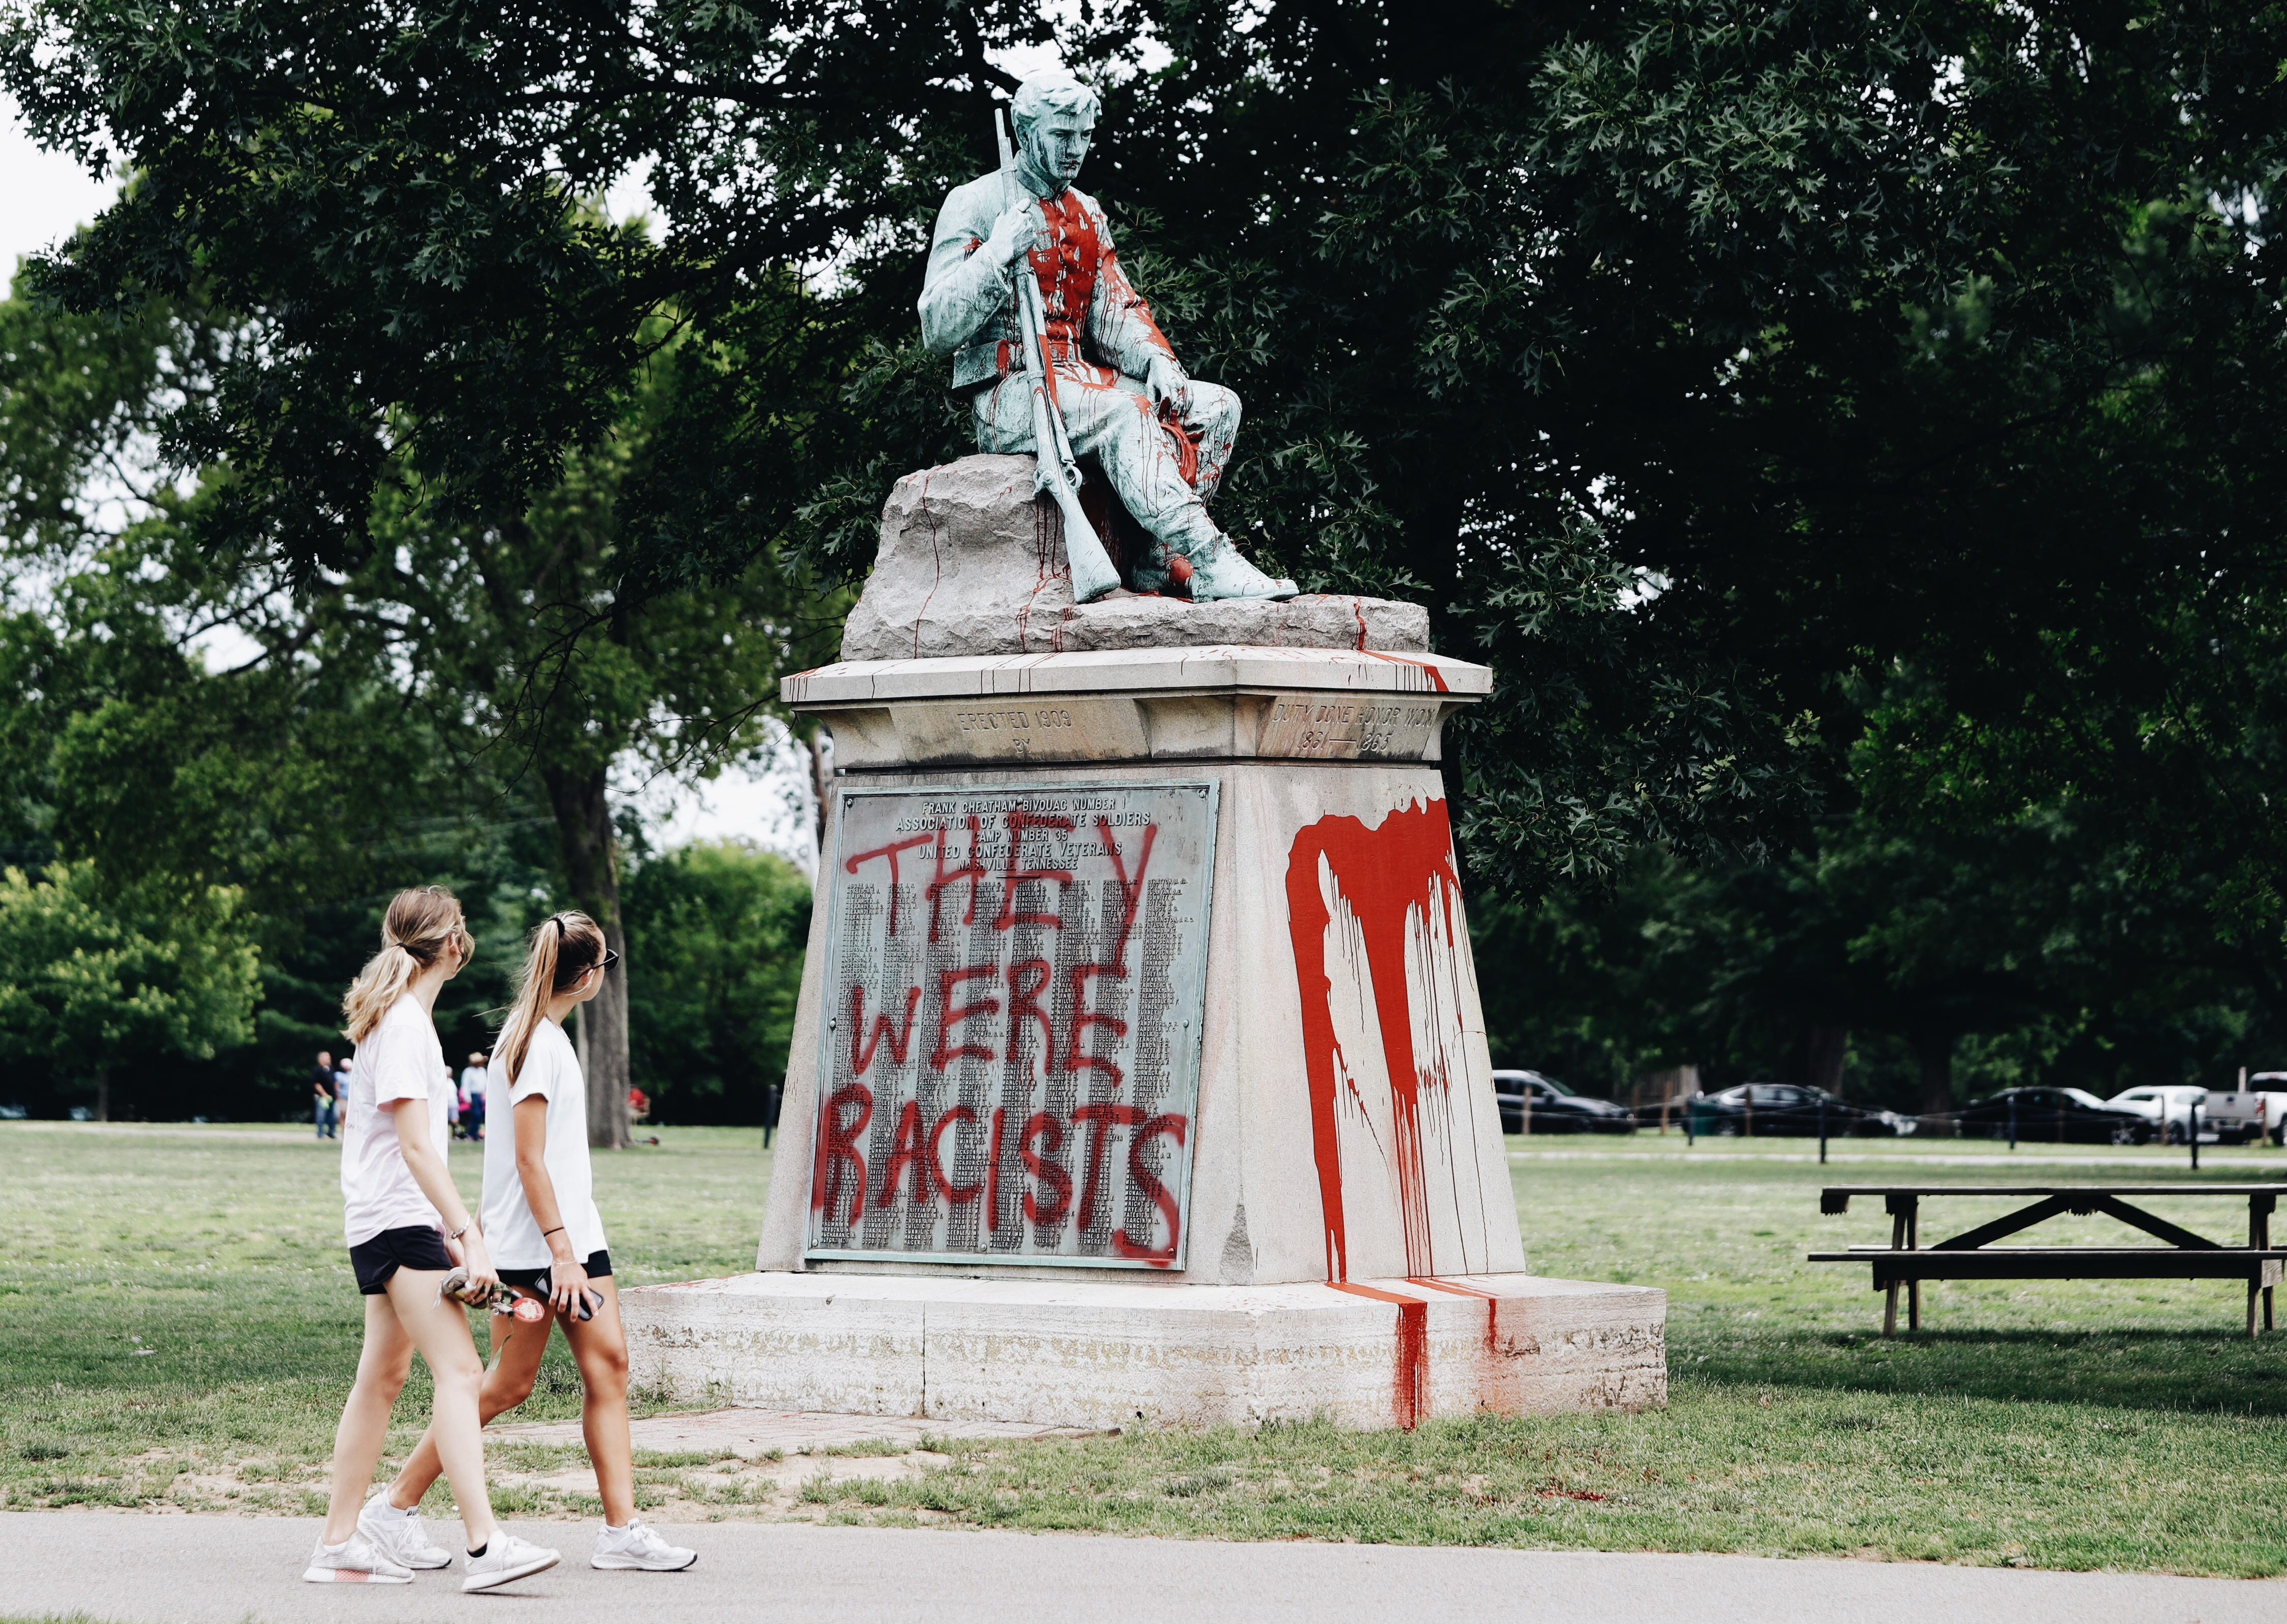 On June 17th, 2019, the vandalized statue remained painted in red while observers passed by.